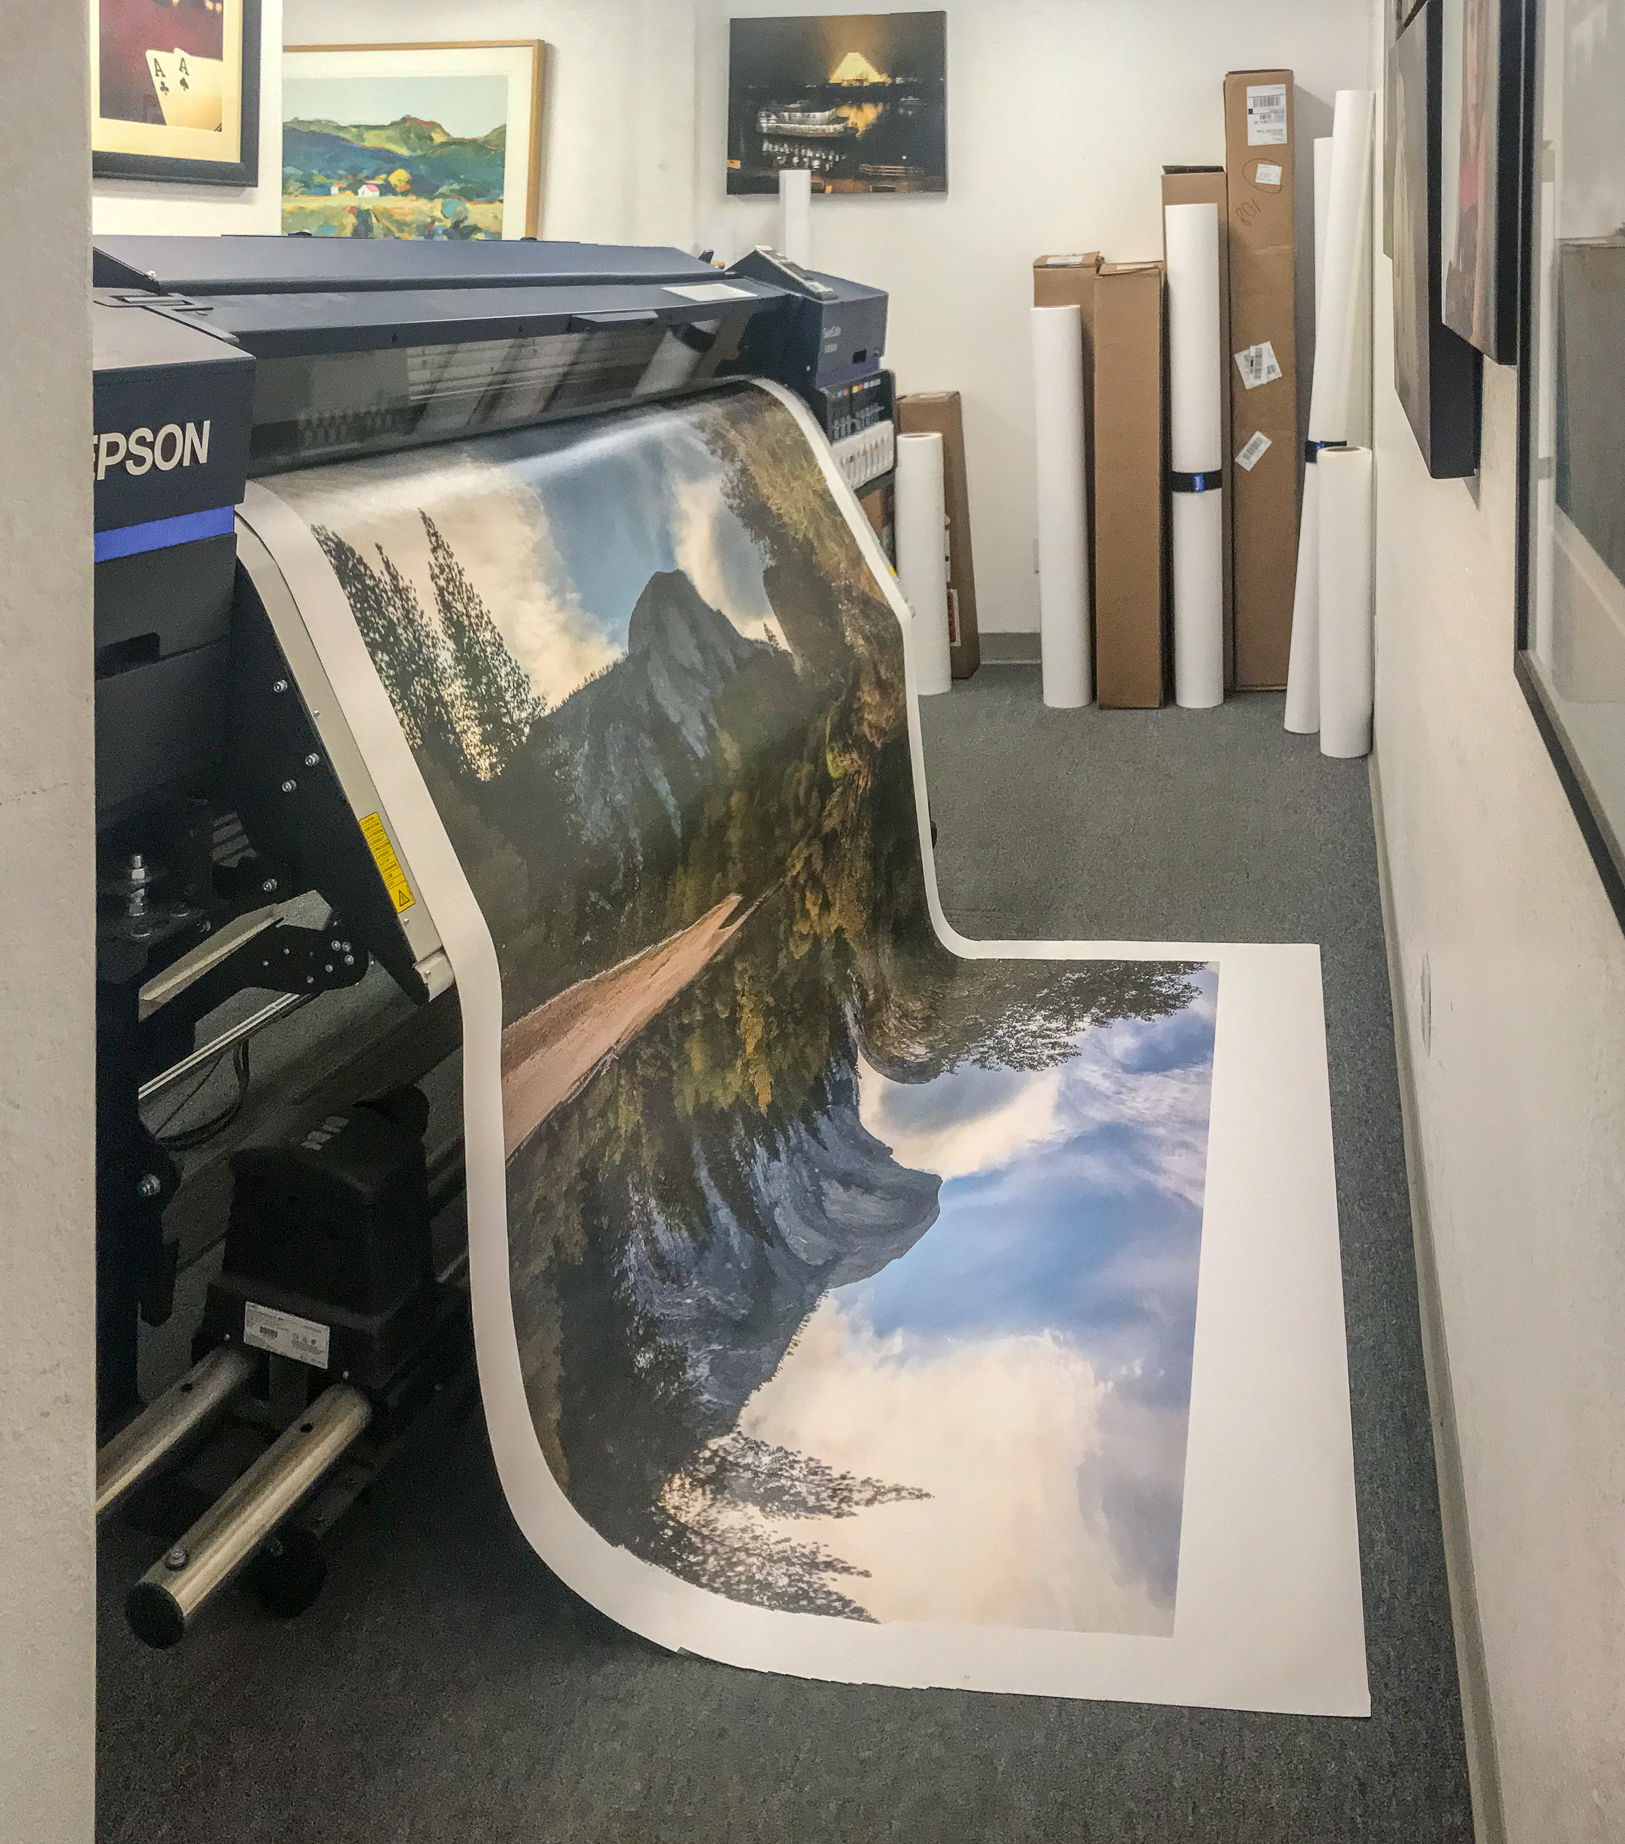 The canvas print emerges out of the printer.